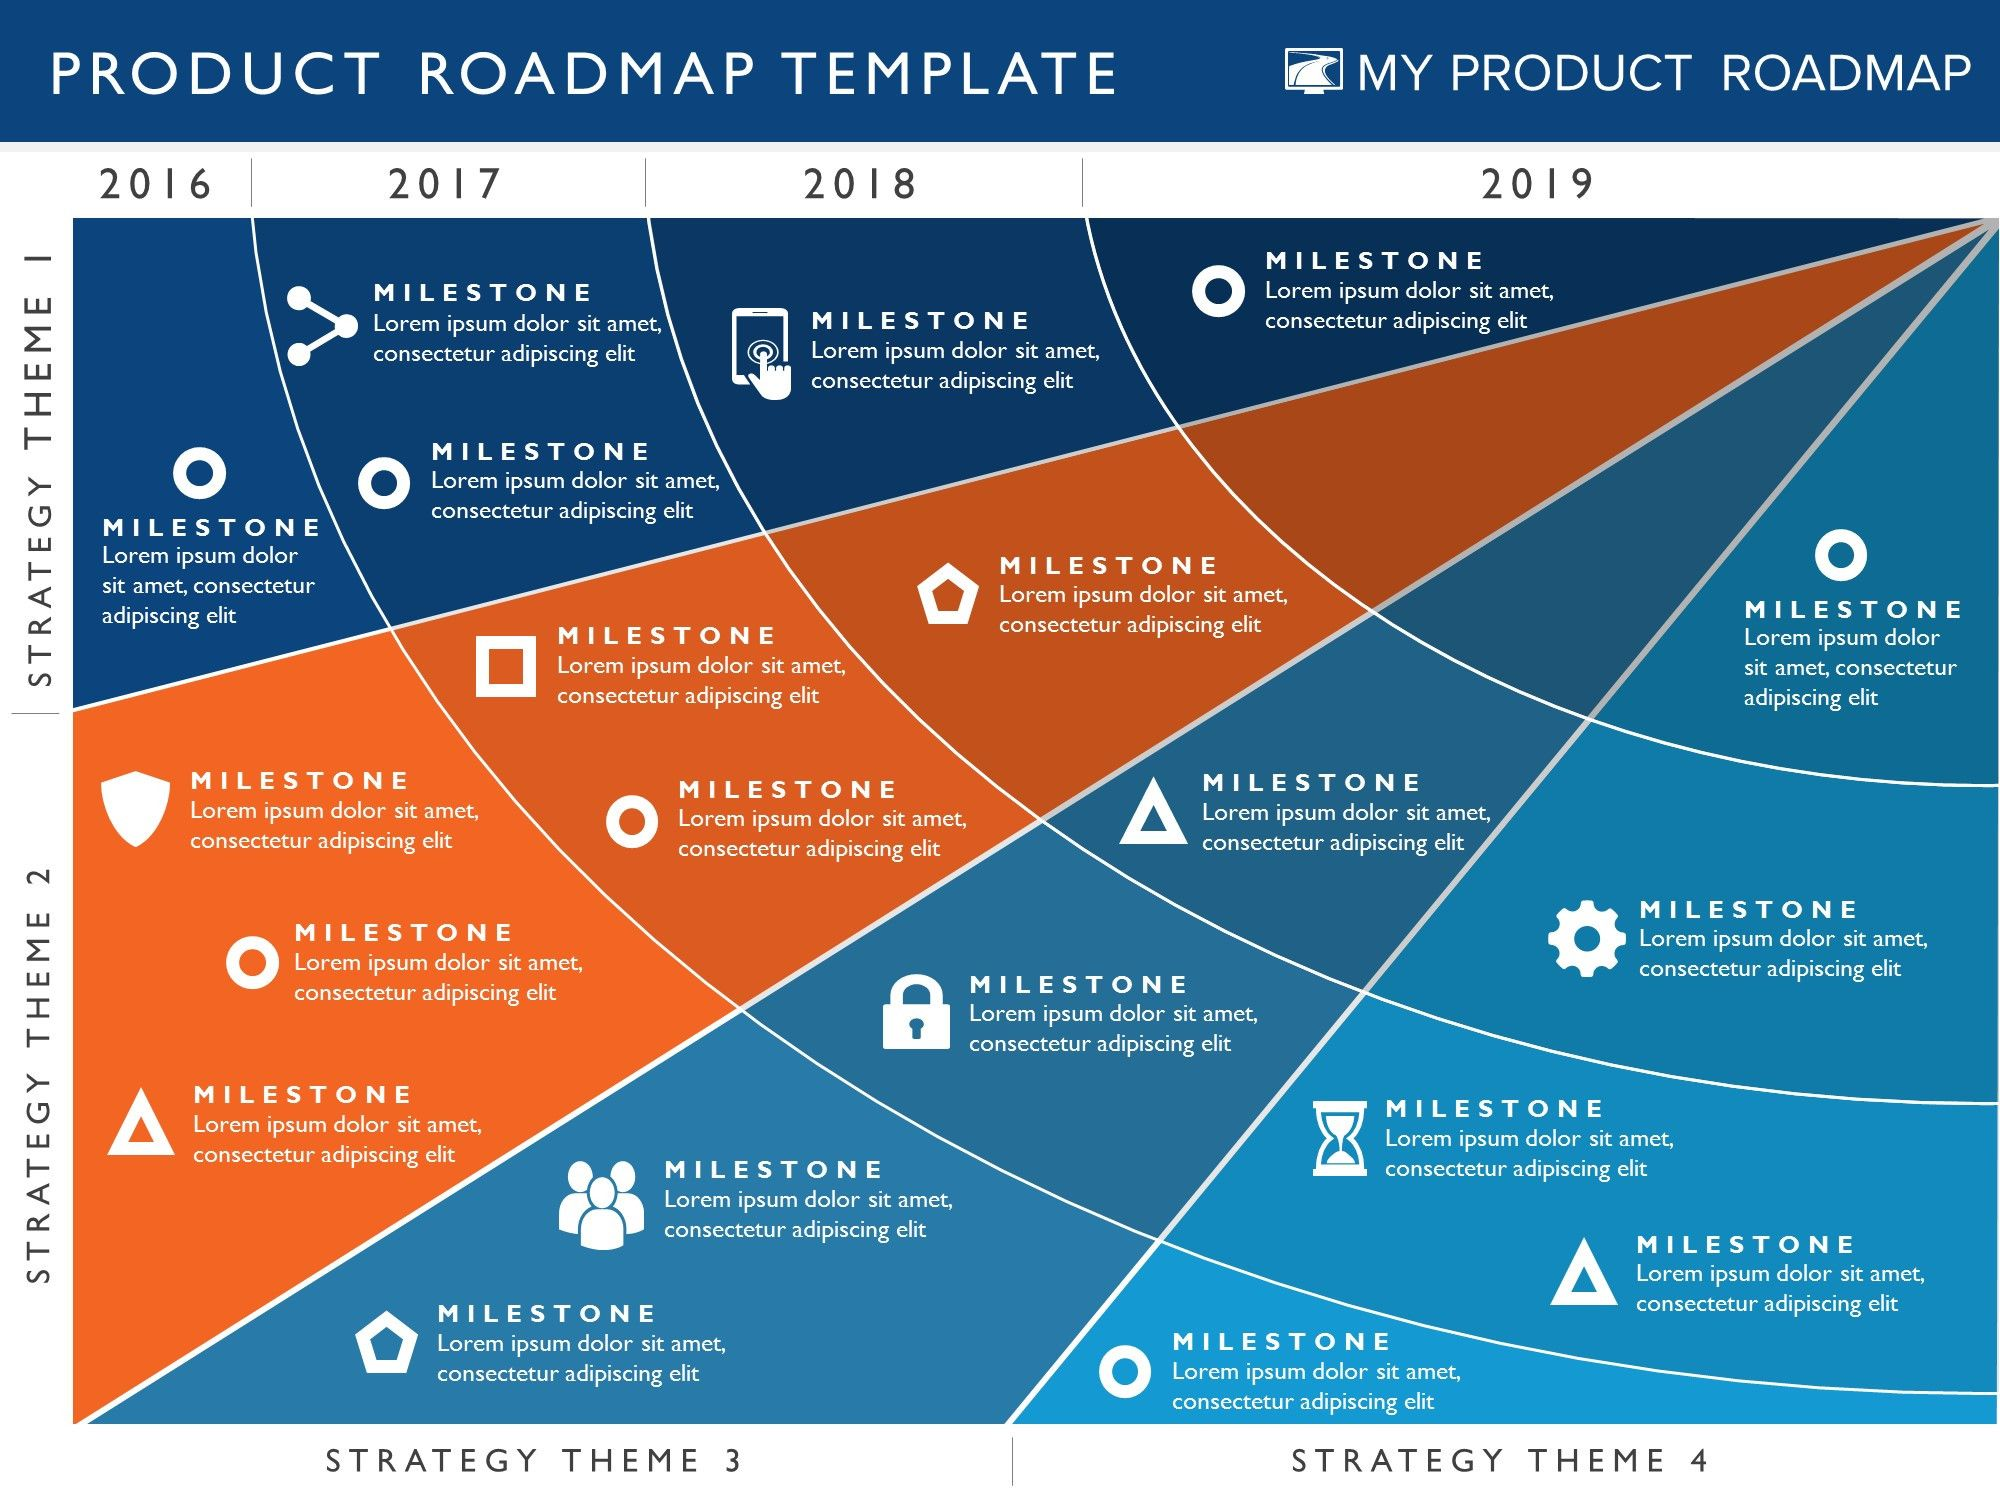 Four Phase Product Strategy Timeline Roadmap Powerpoint Template - Roadmap timeline template ppt